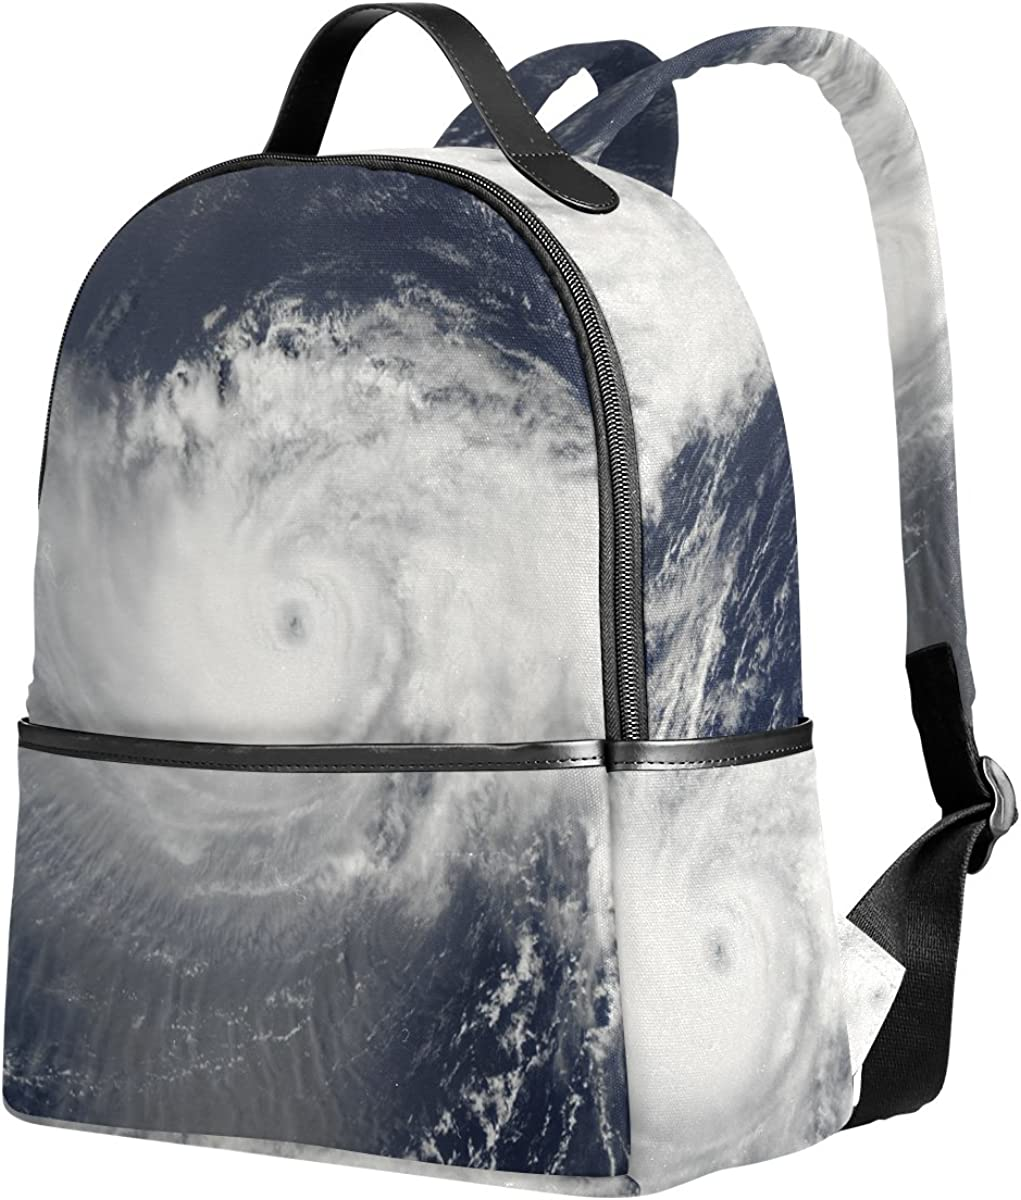 Mr.Weng Tornado Printed Canvas Backpack For Girl and Children